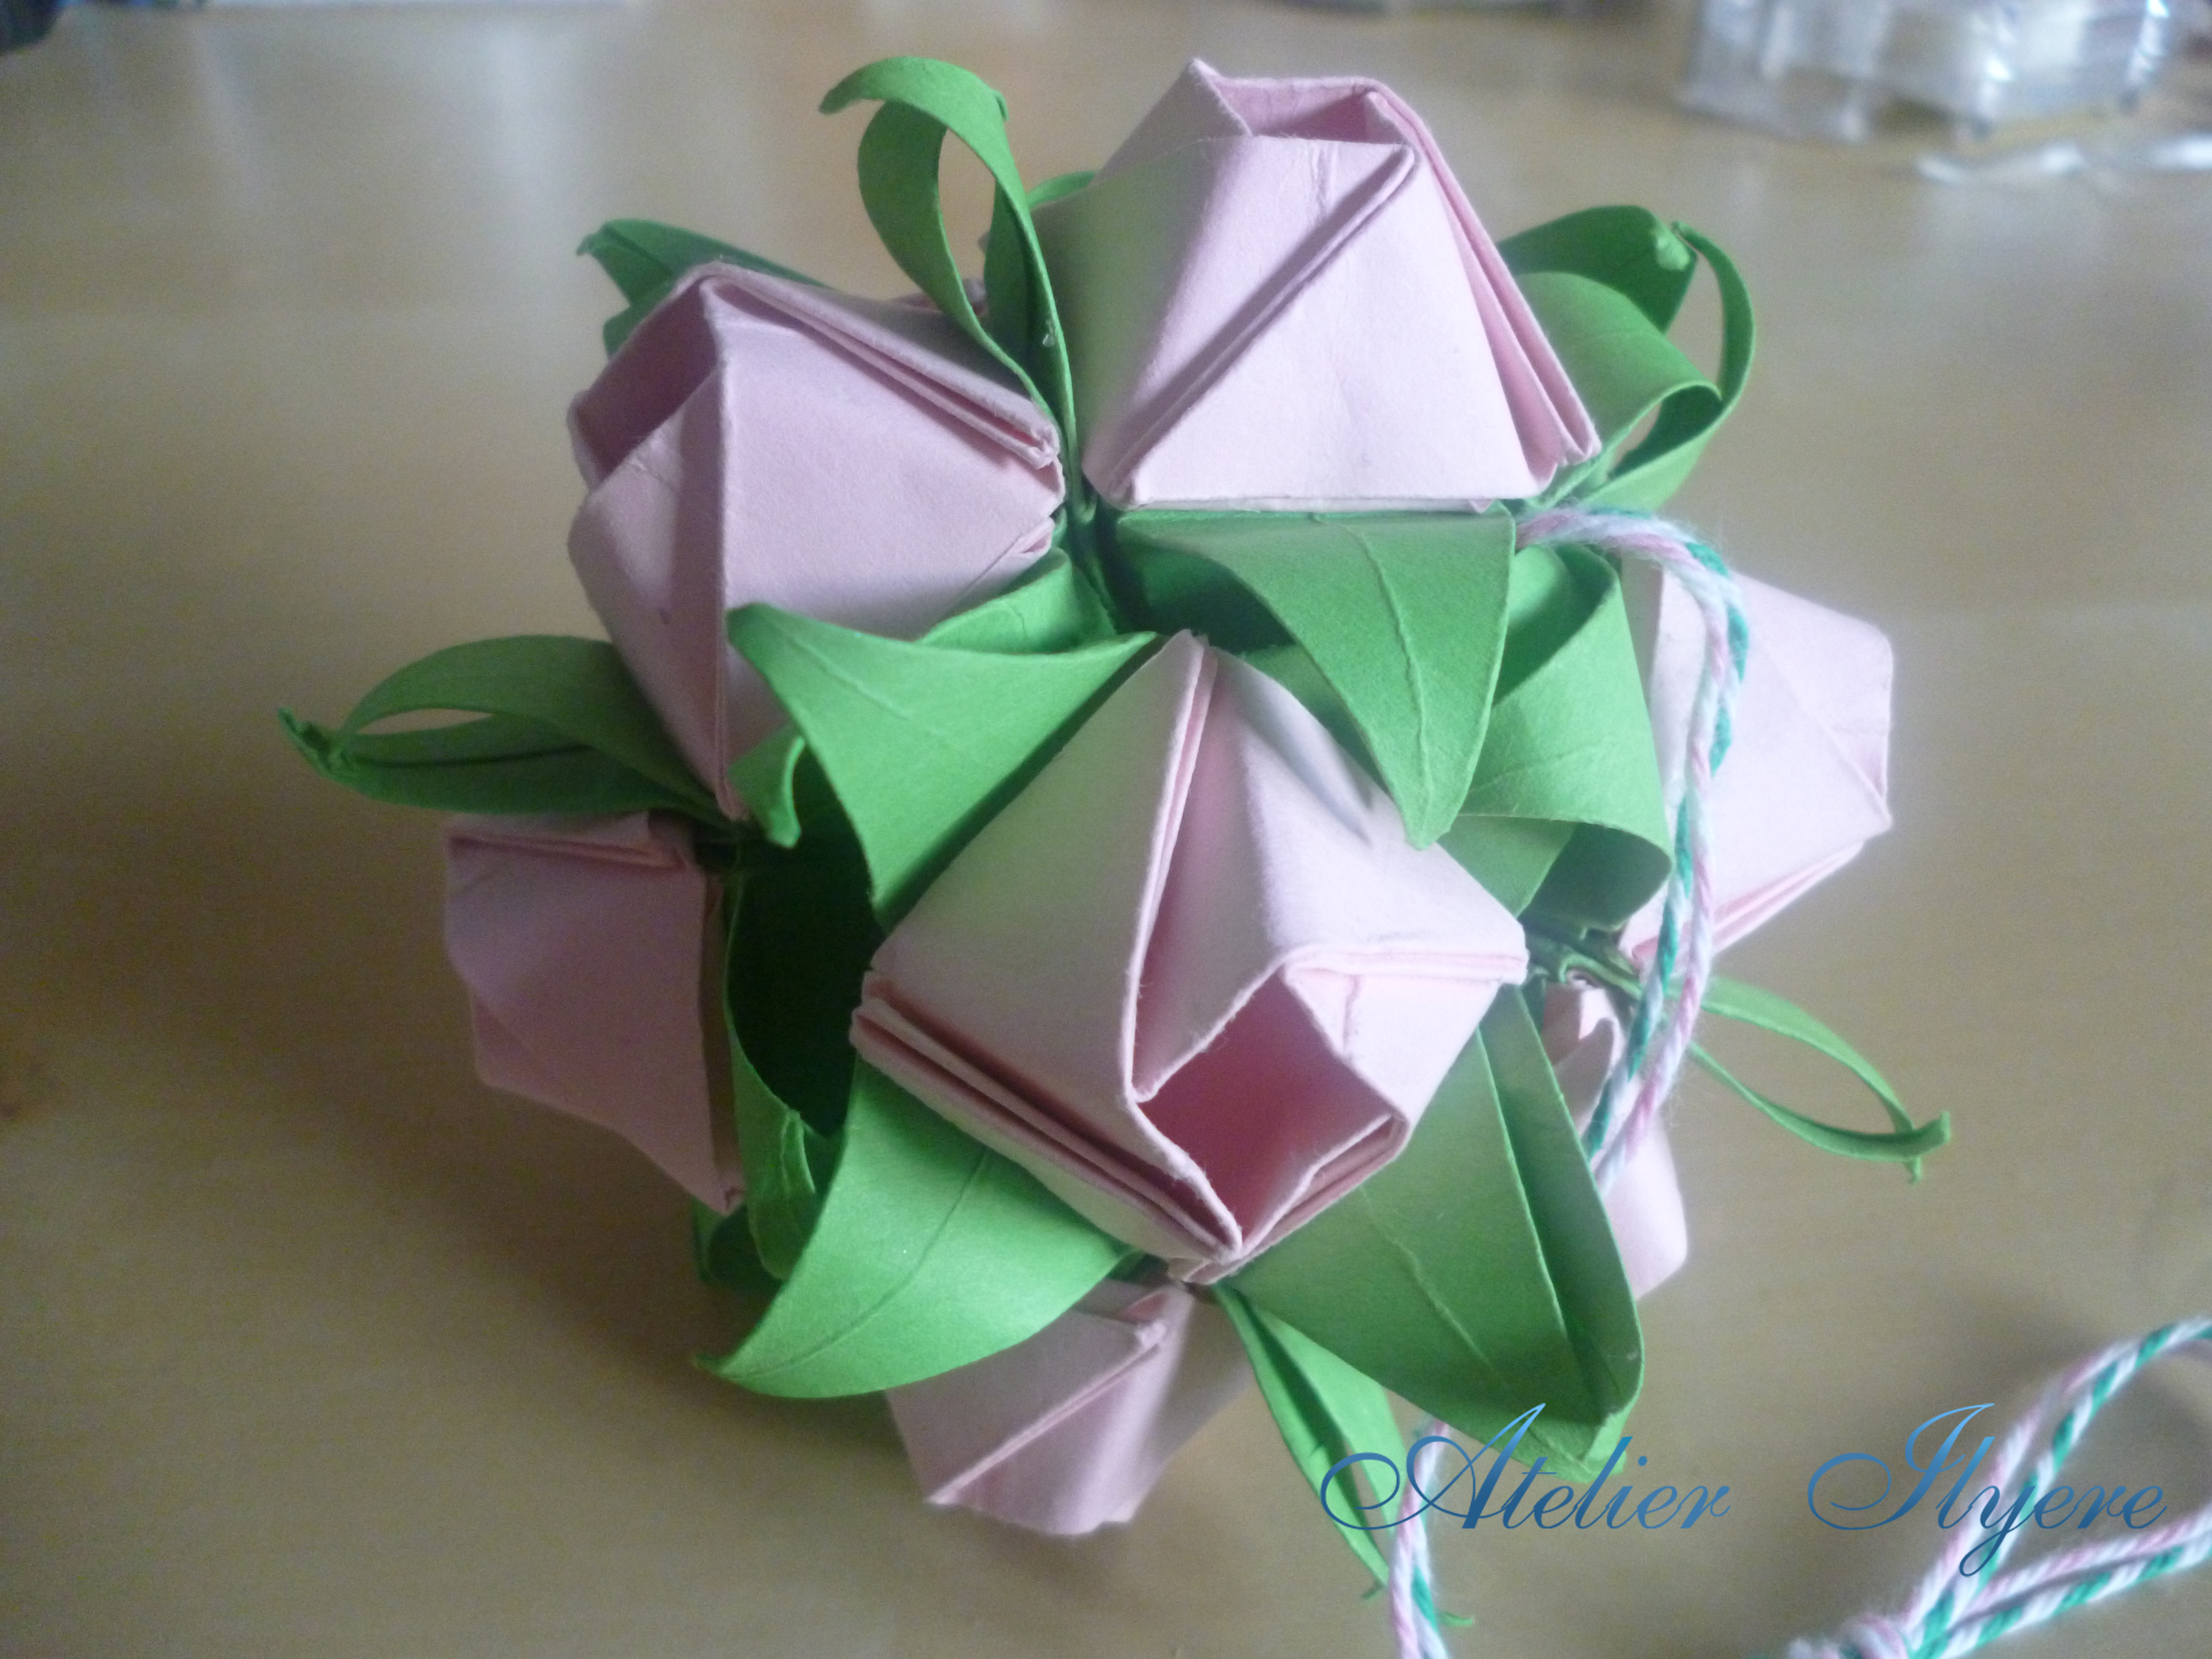 Origami Flowers | Learn 2 Origami - Origami & Paper Craft